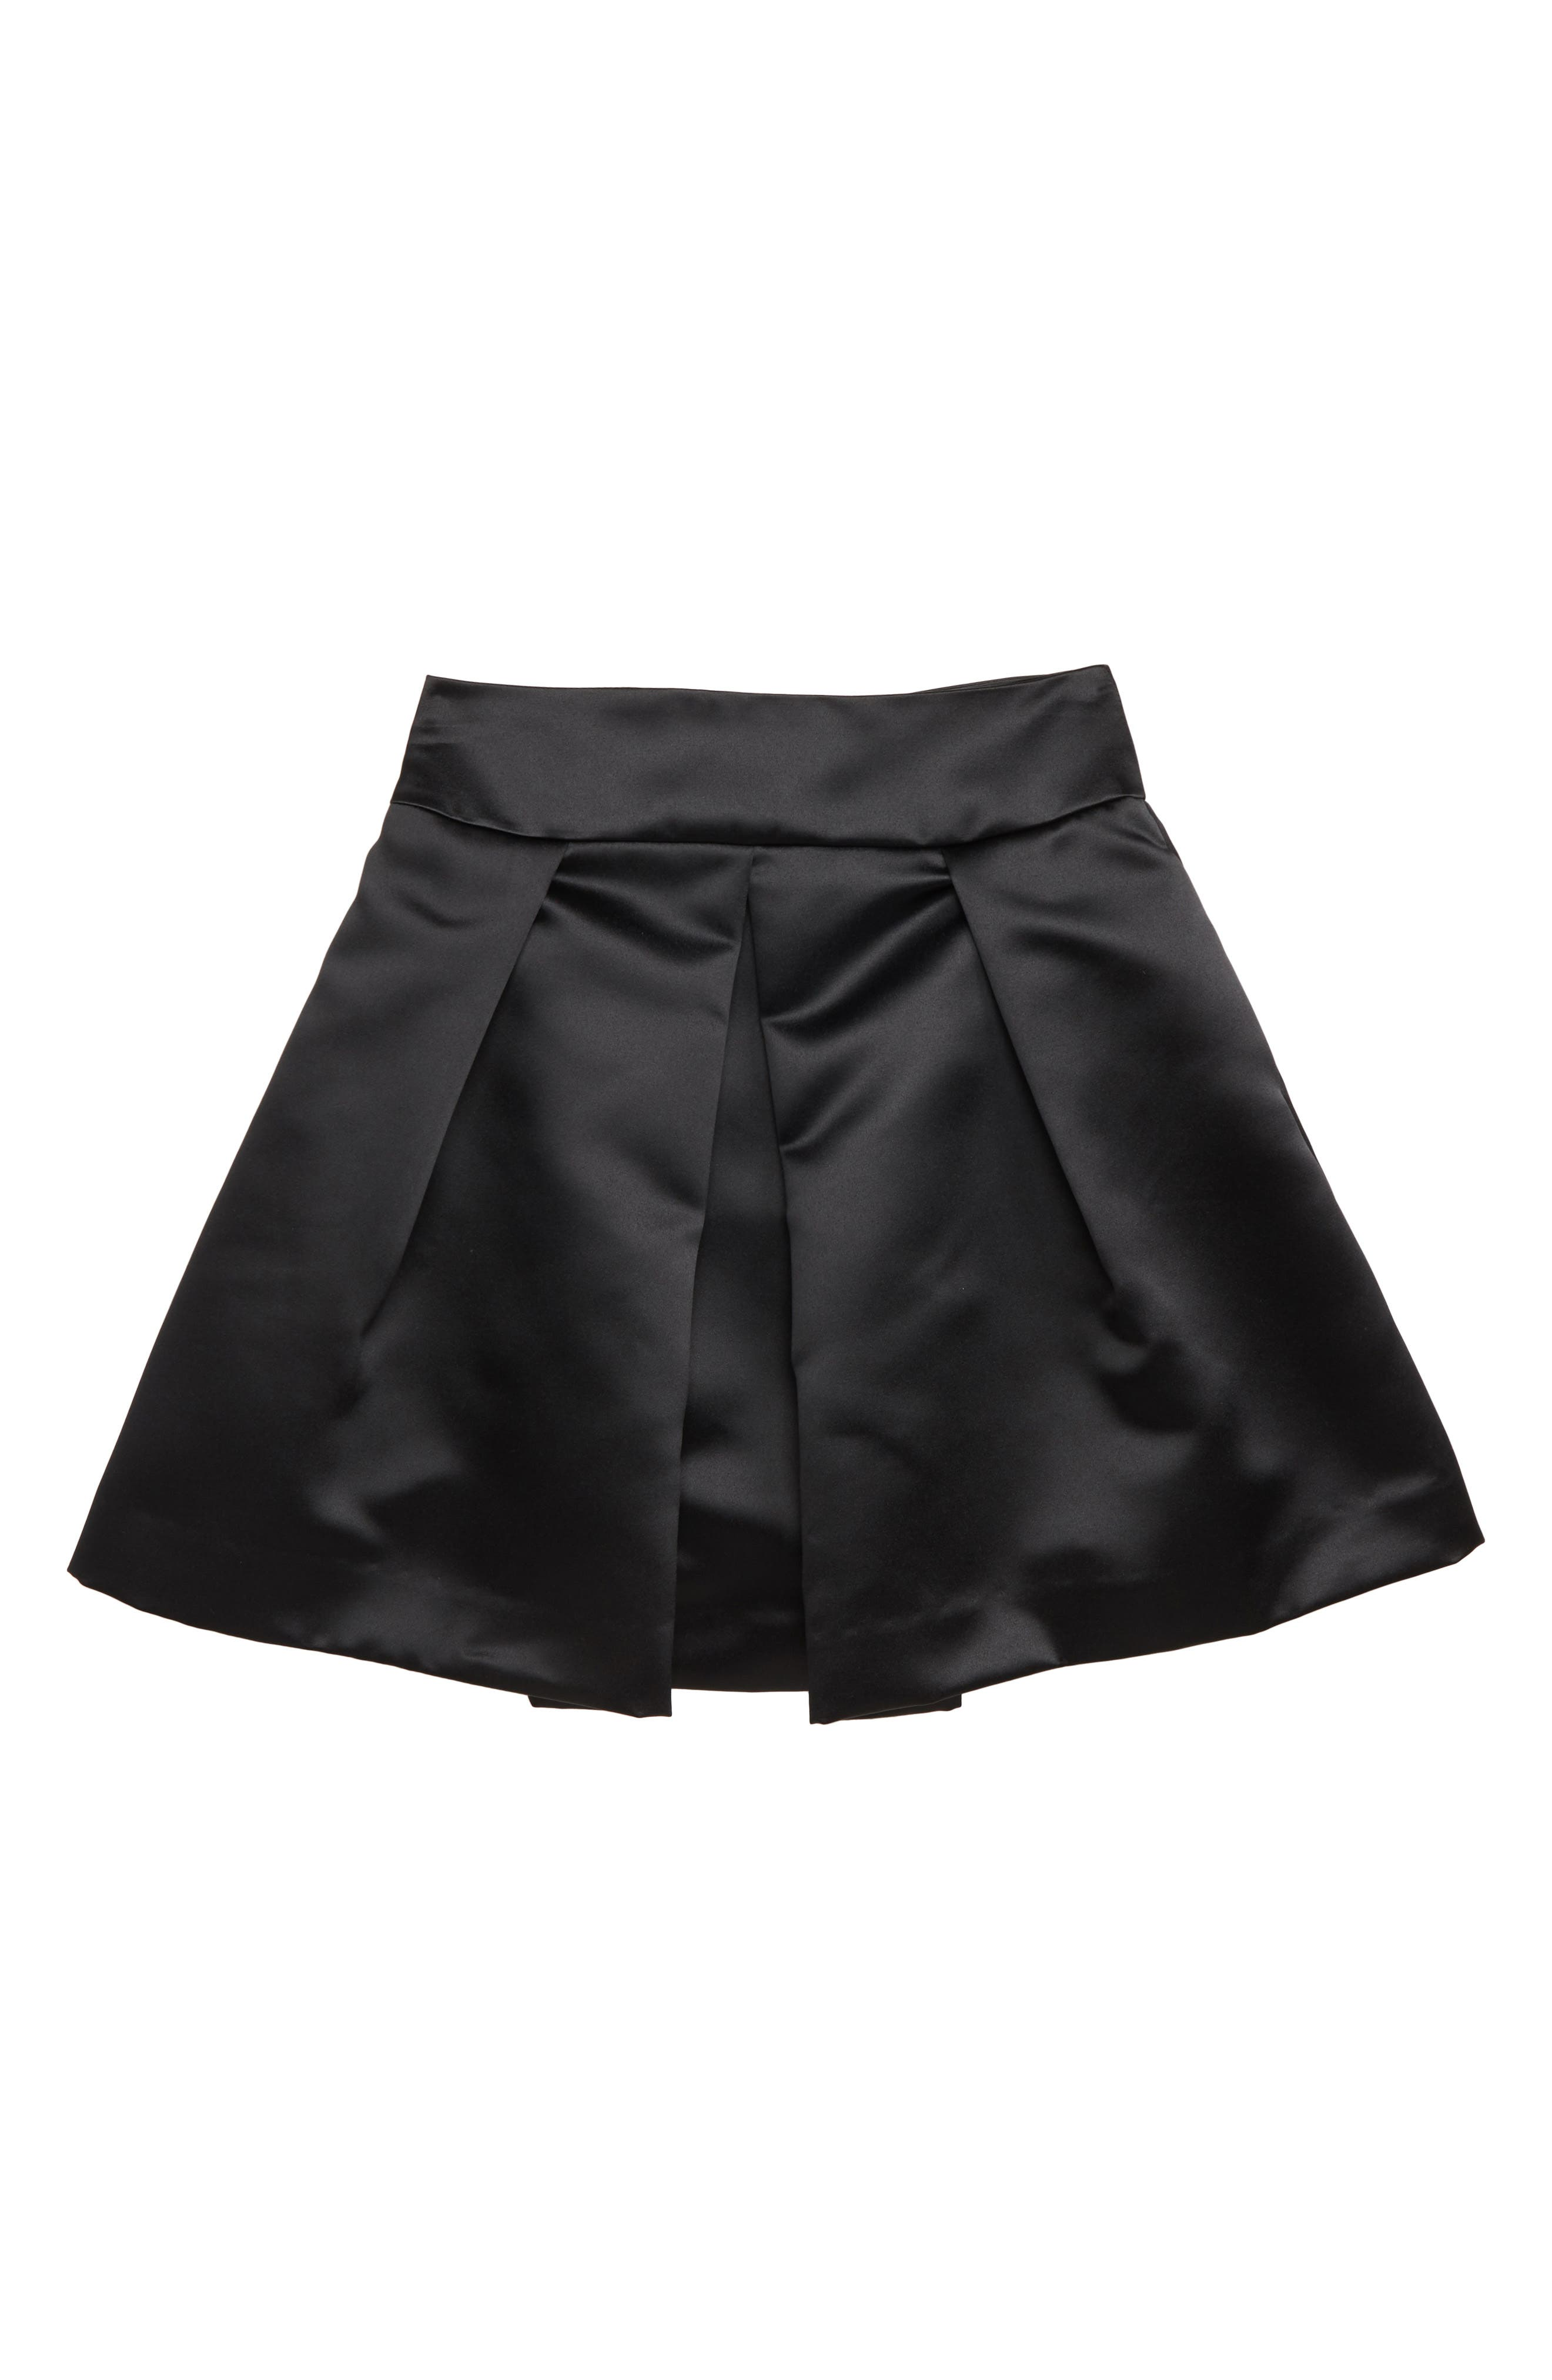 MILLY MINIS, Pleated Skirt, Main thumbnail 1, color, 001